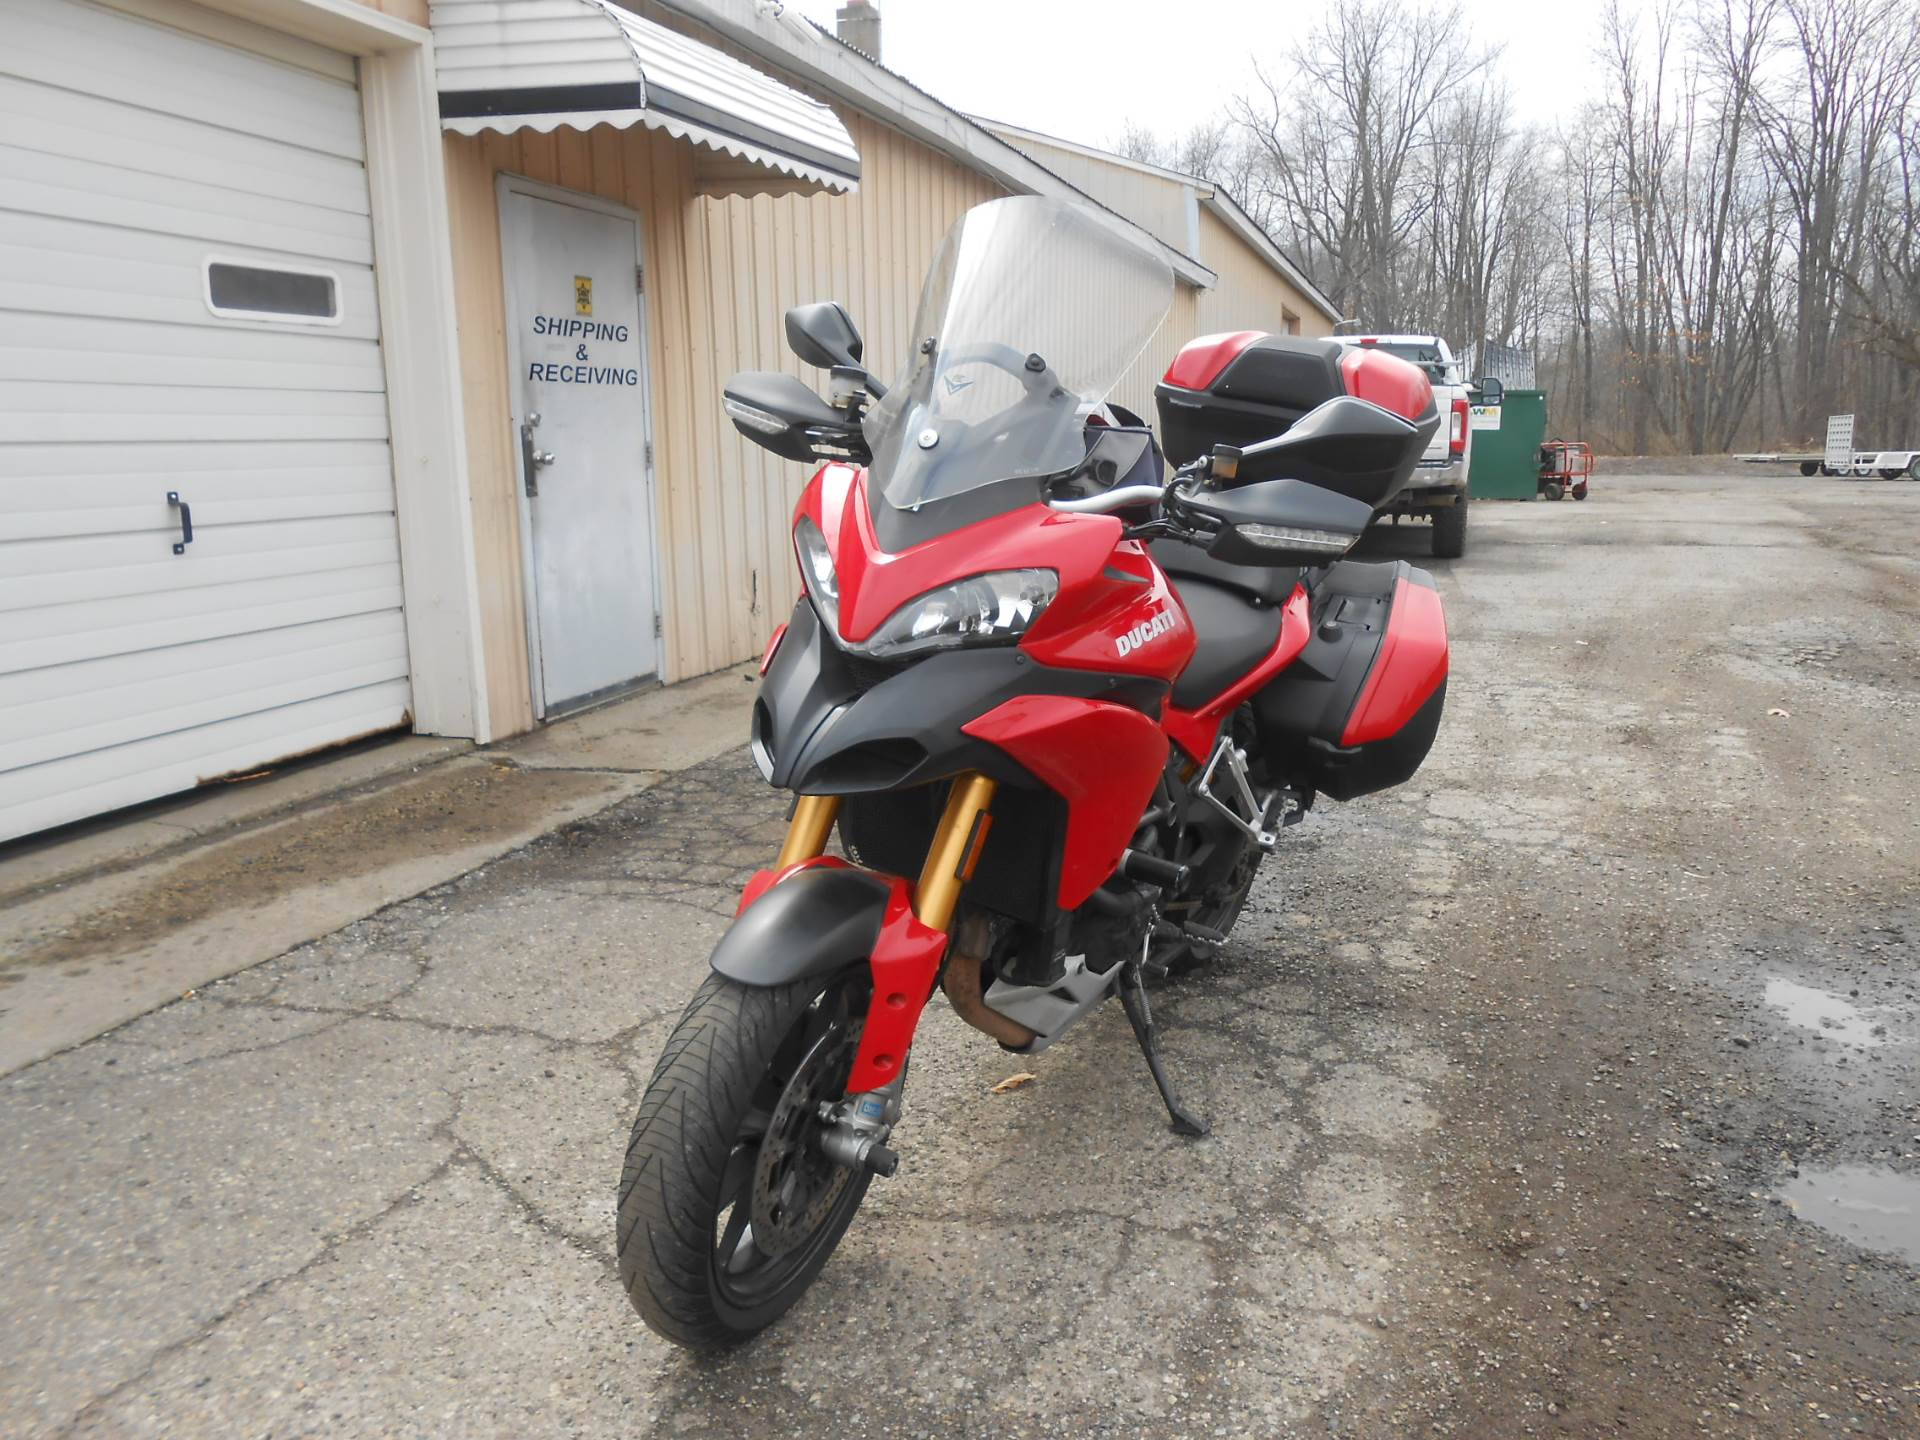 2011 Ducati Multistrada 1200 S Touring in Howell, Michigan - Photo 9